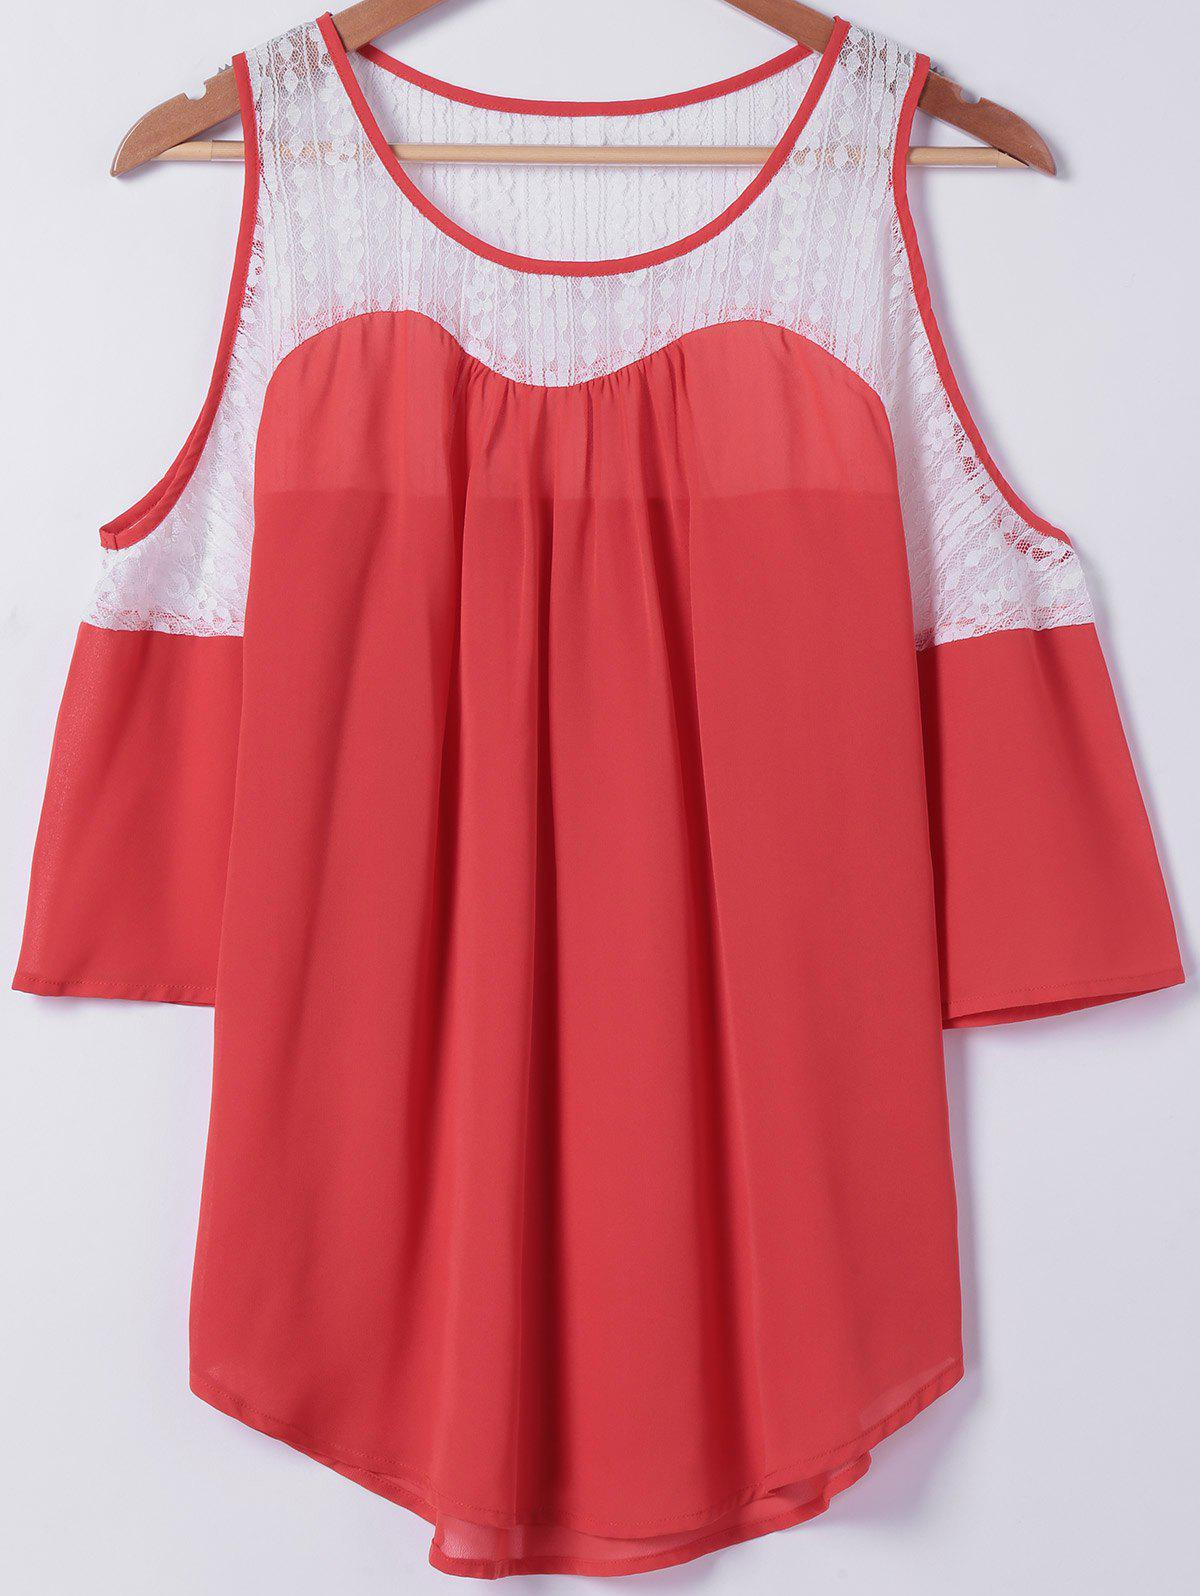 Lace Splicing Cold Shoulder Blouse - RED/WHITE M